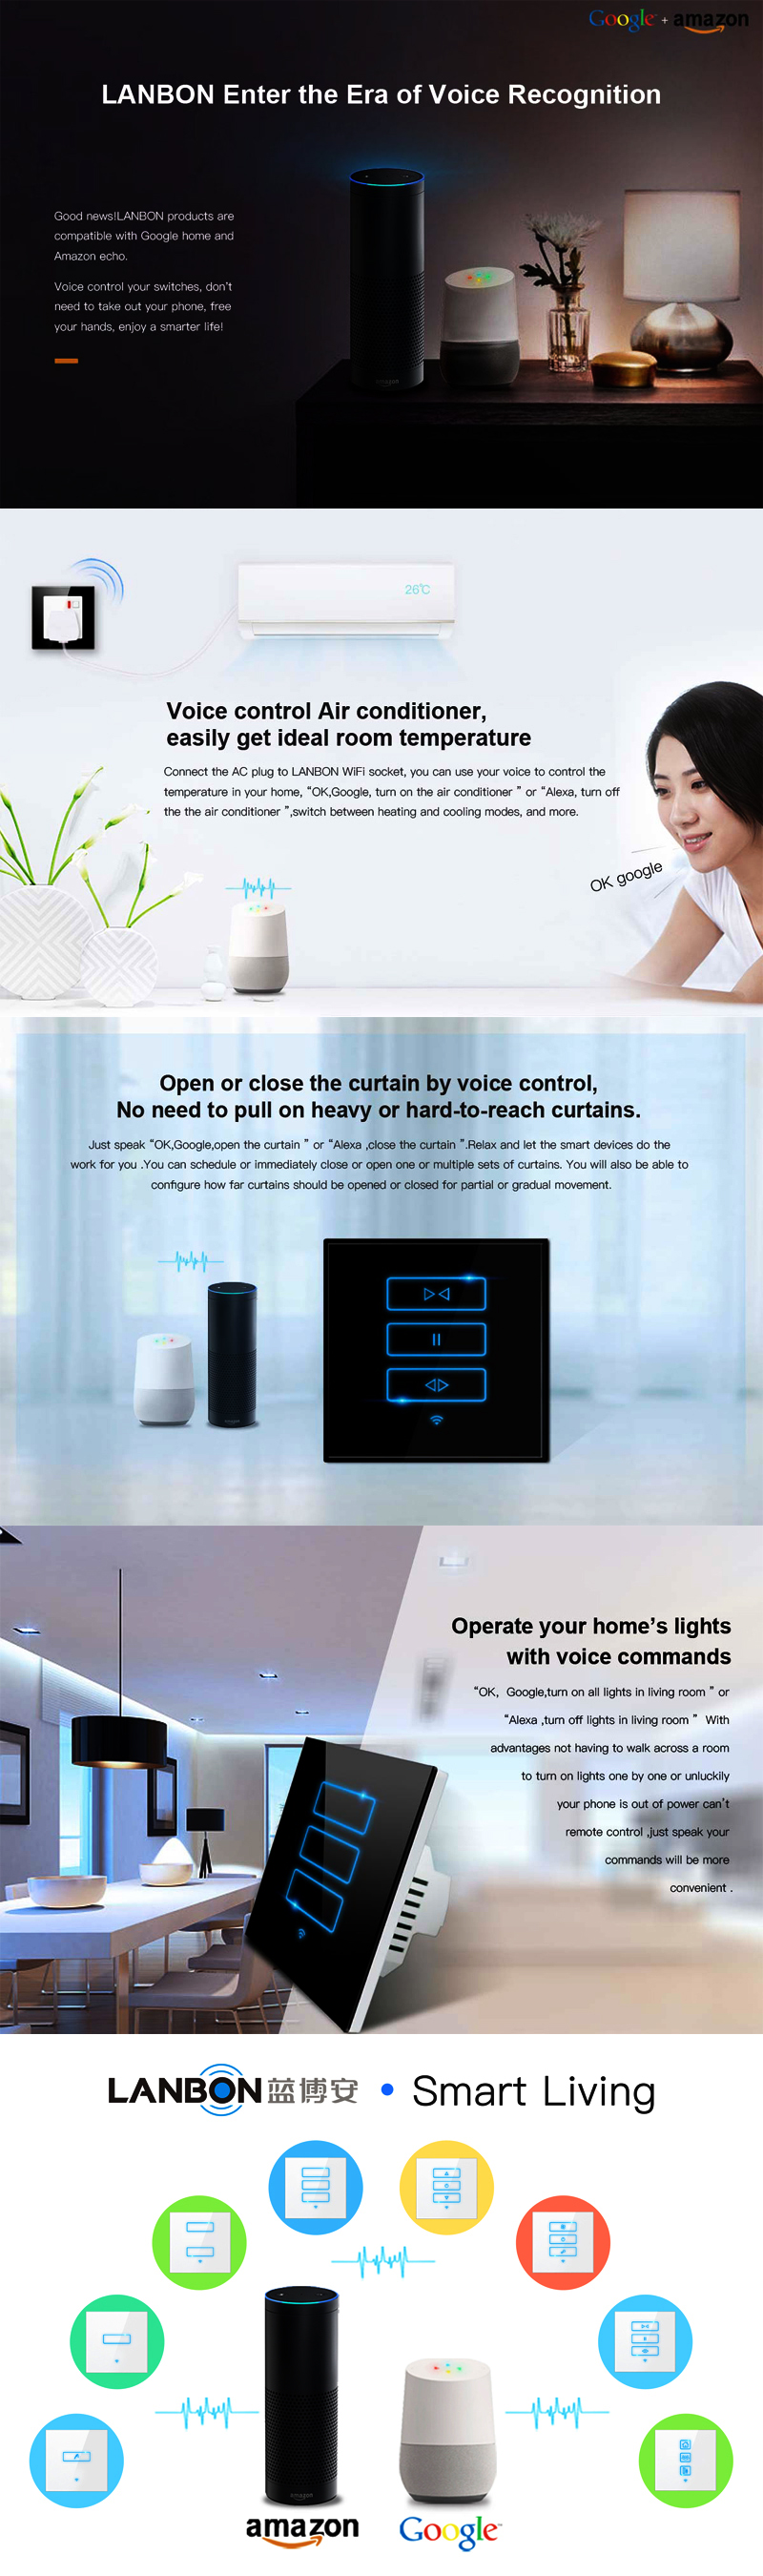 Lanbon Smart Wifi Switch Beyond Zigbee Home Automation Google Alexa 3 Way For Speaker Phone Controlled Light Gang 1 2